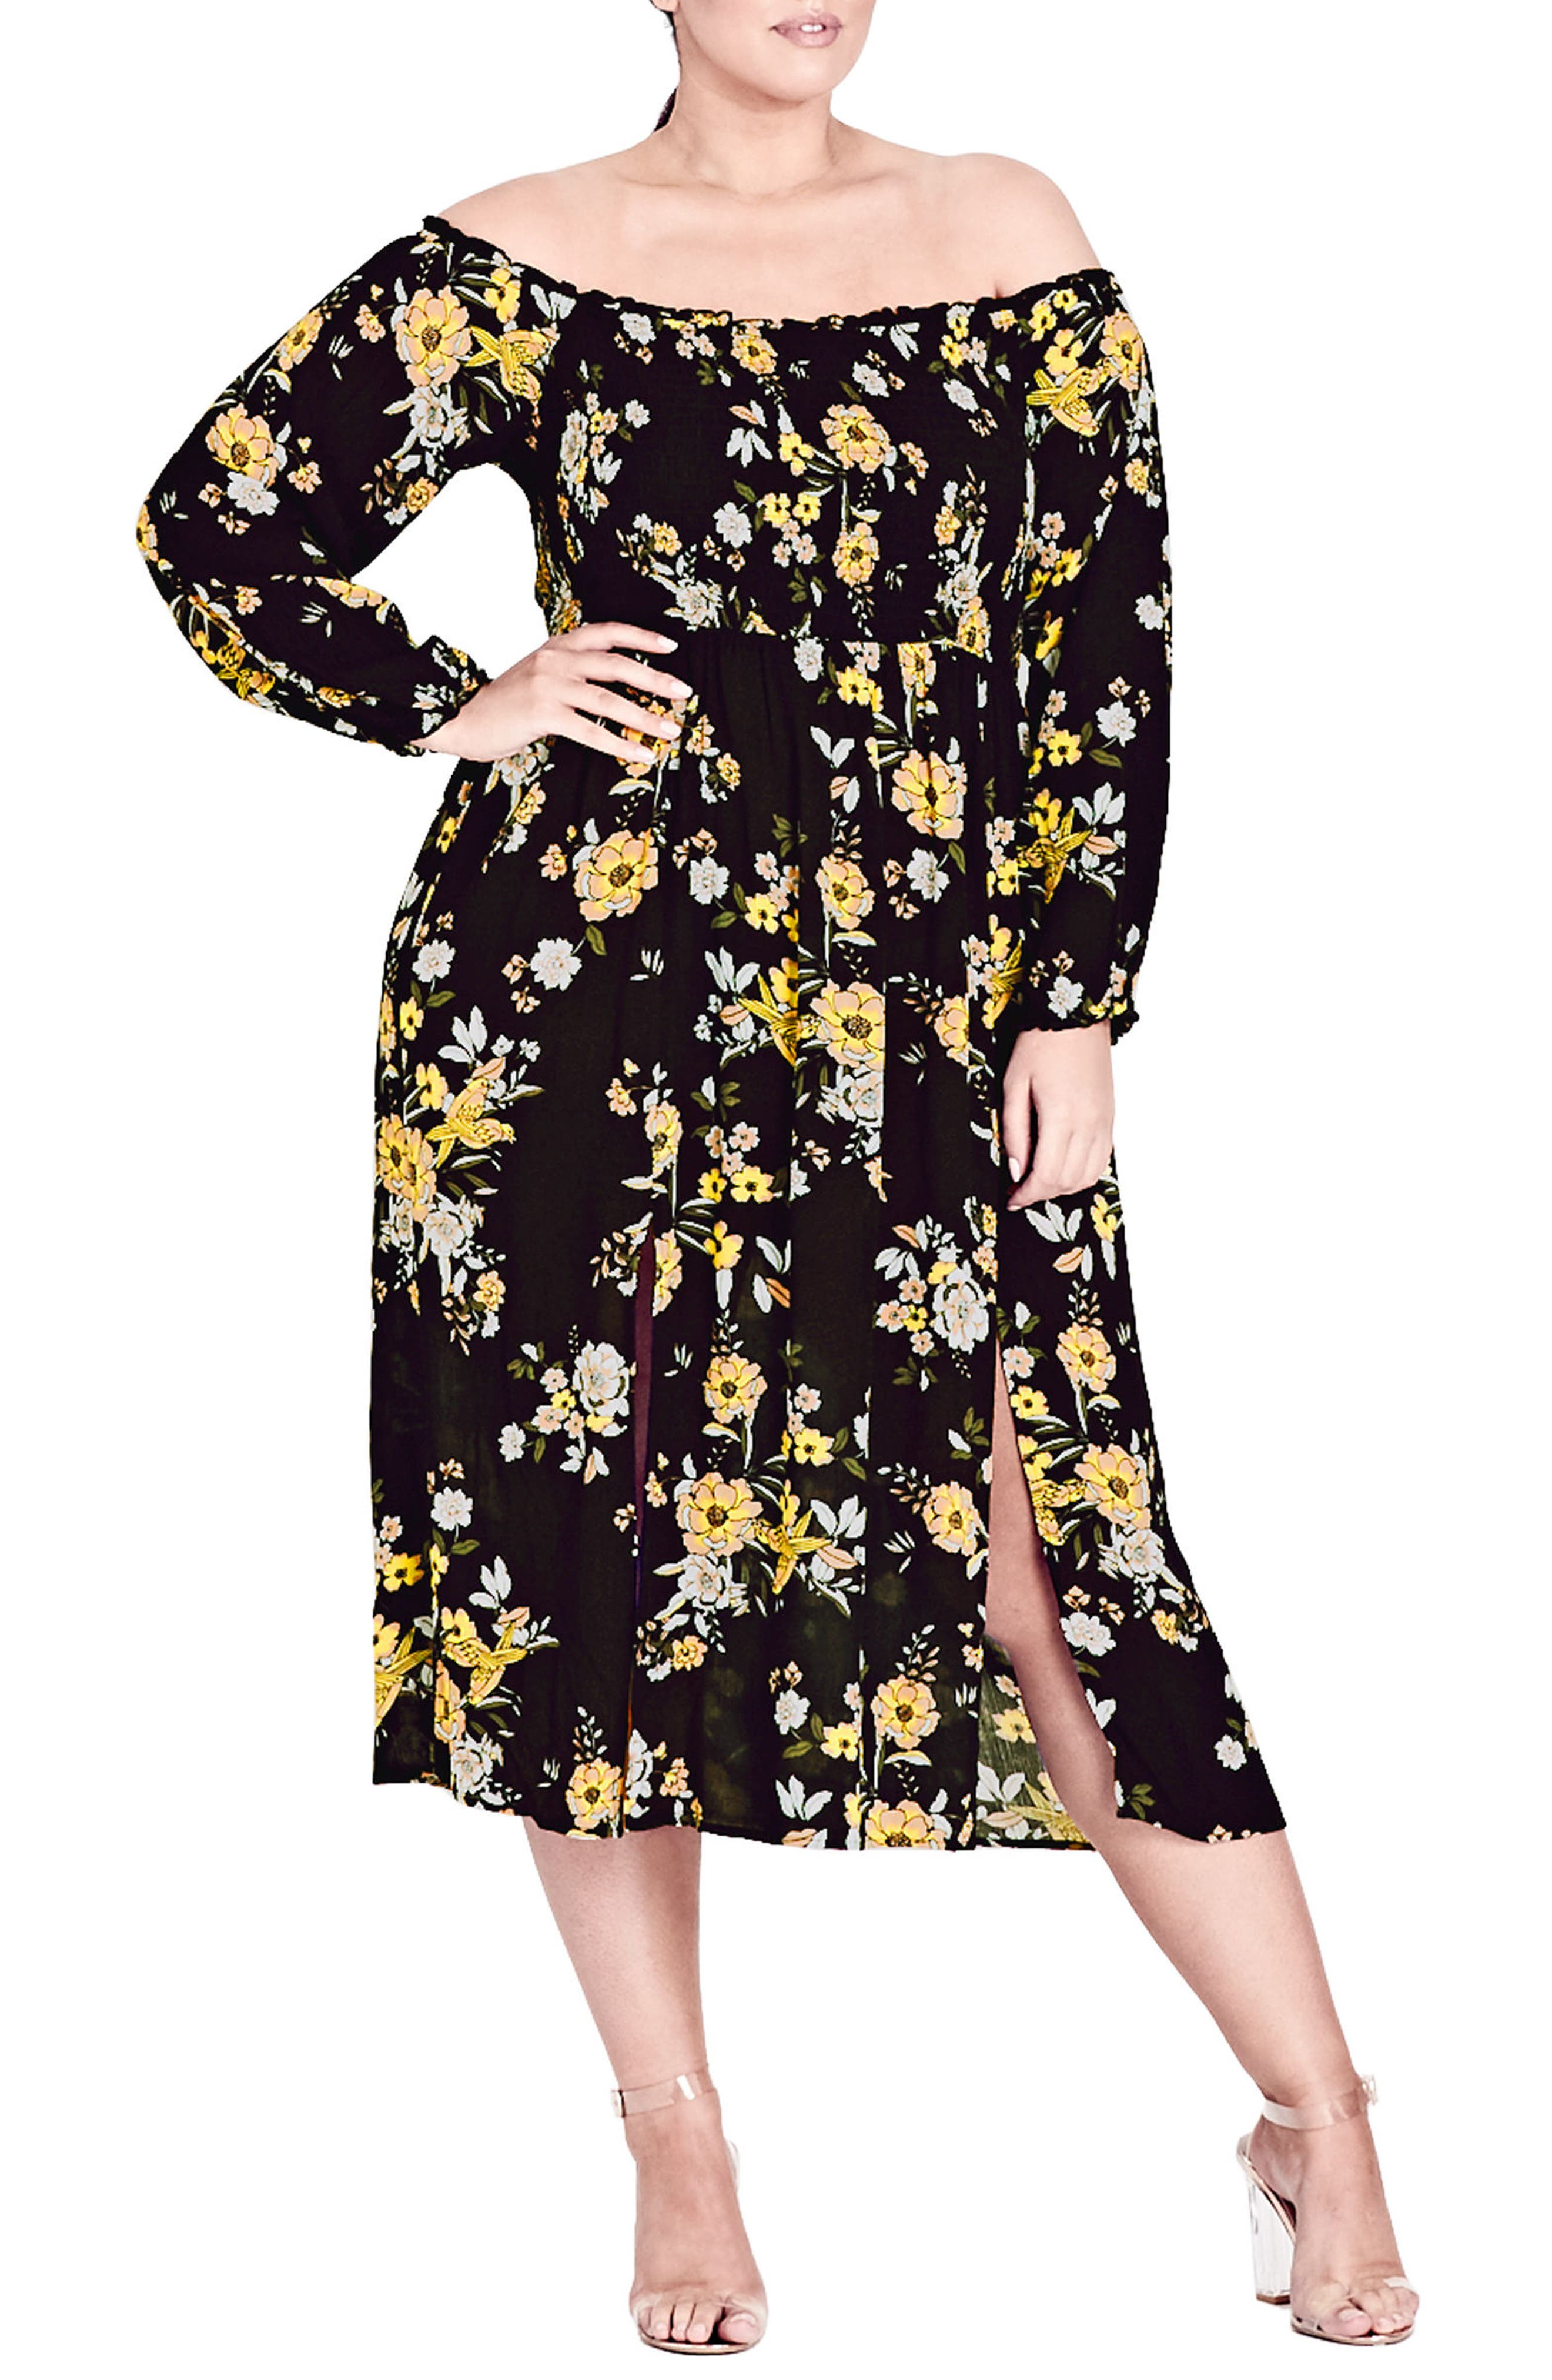 Miss Chirpy Off the Shoulder Dress,                         Main,                         color, Miss Chirpy